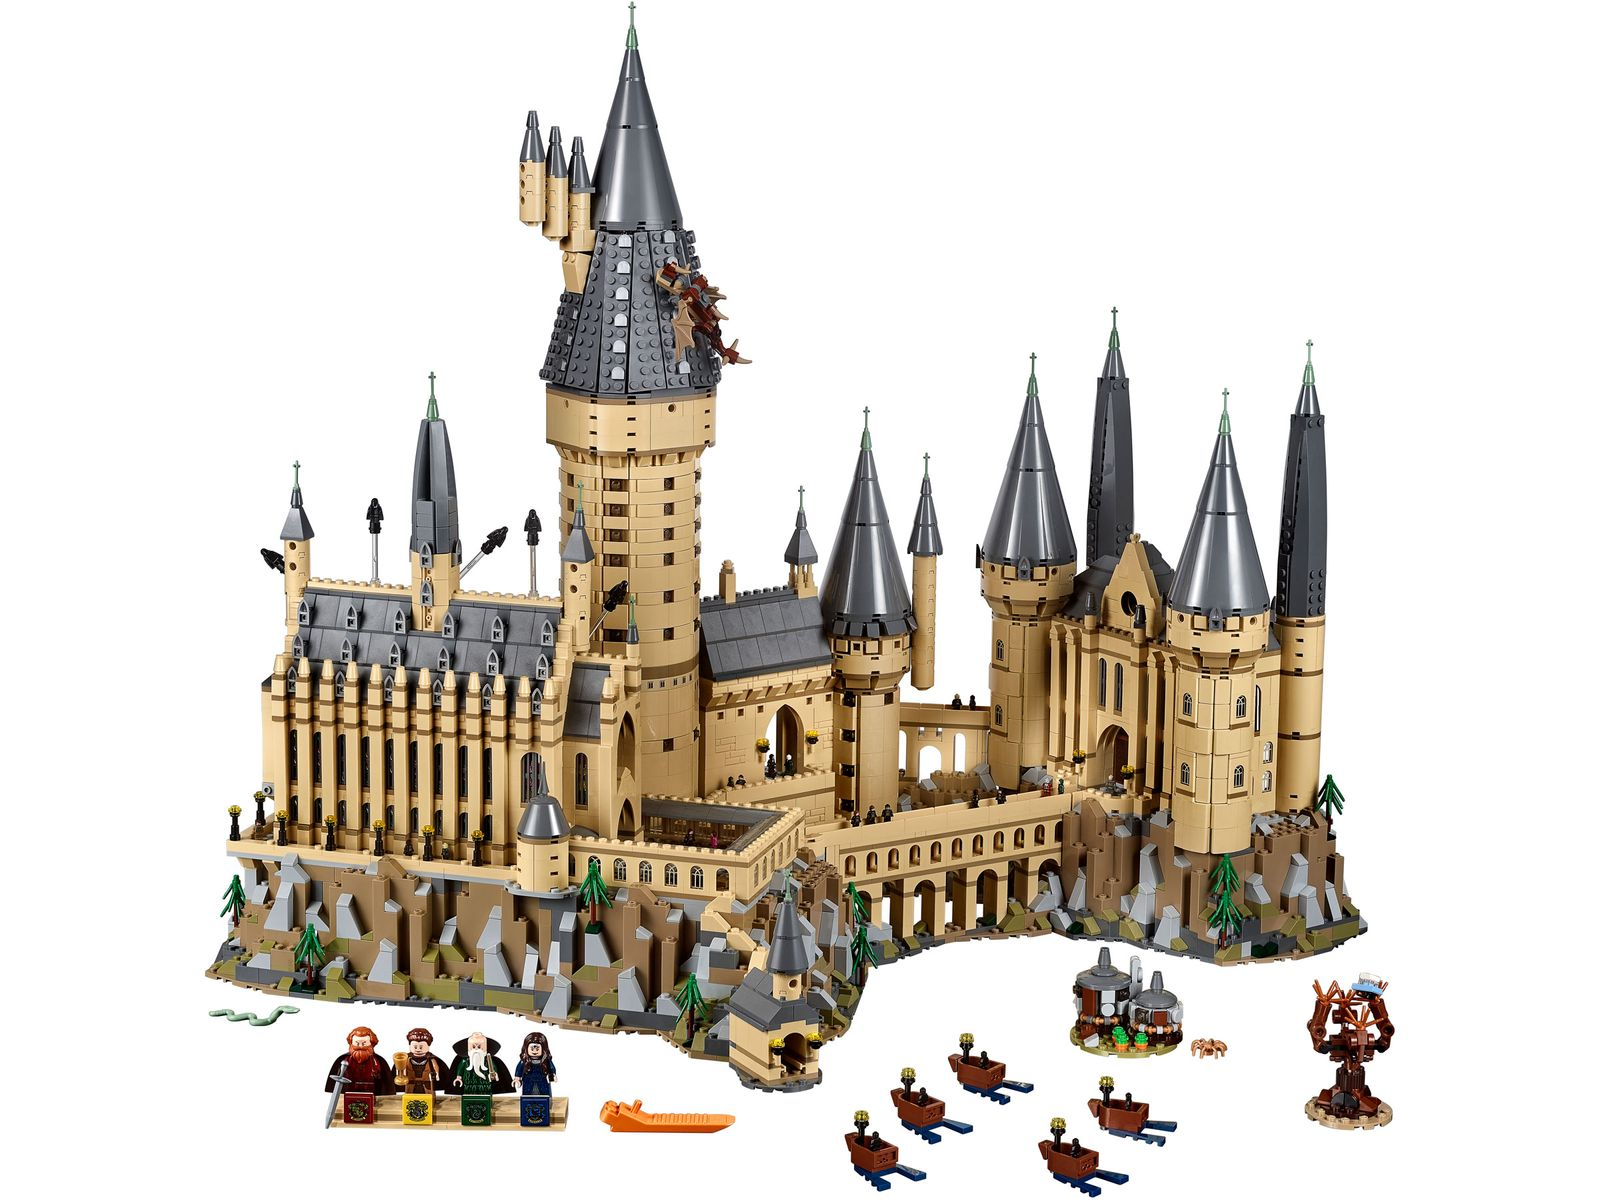 Us Inspire And Develop The Builders Of Tomorrow Lgs Slim Fit Youth Boy Giant Leap Merah L Hogwarts Castle